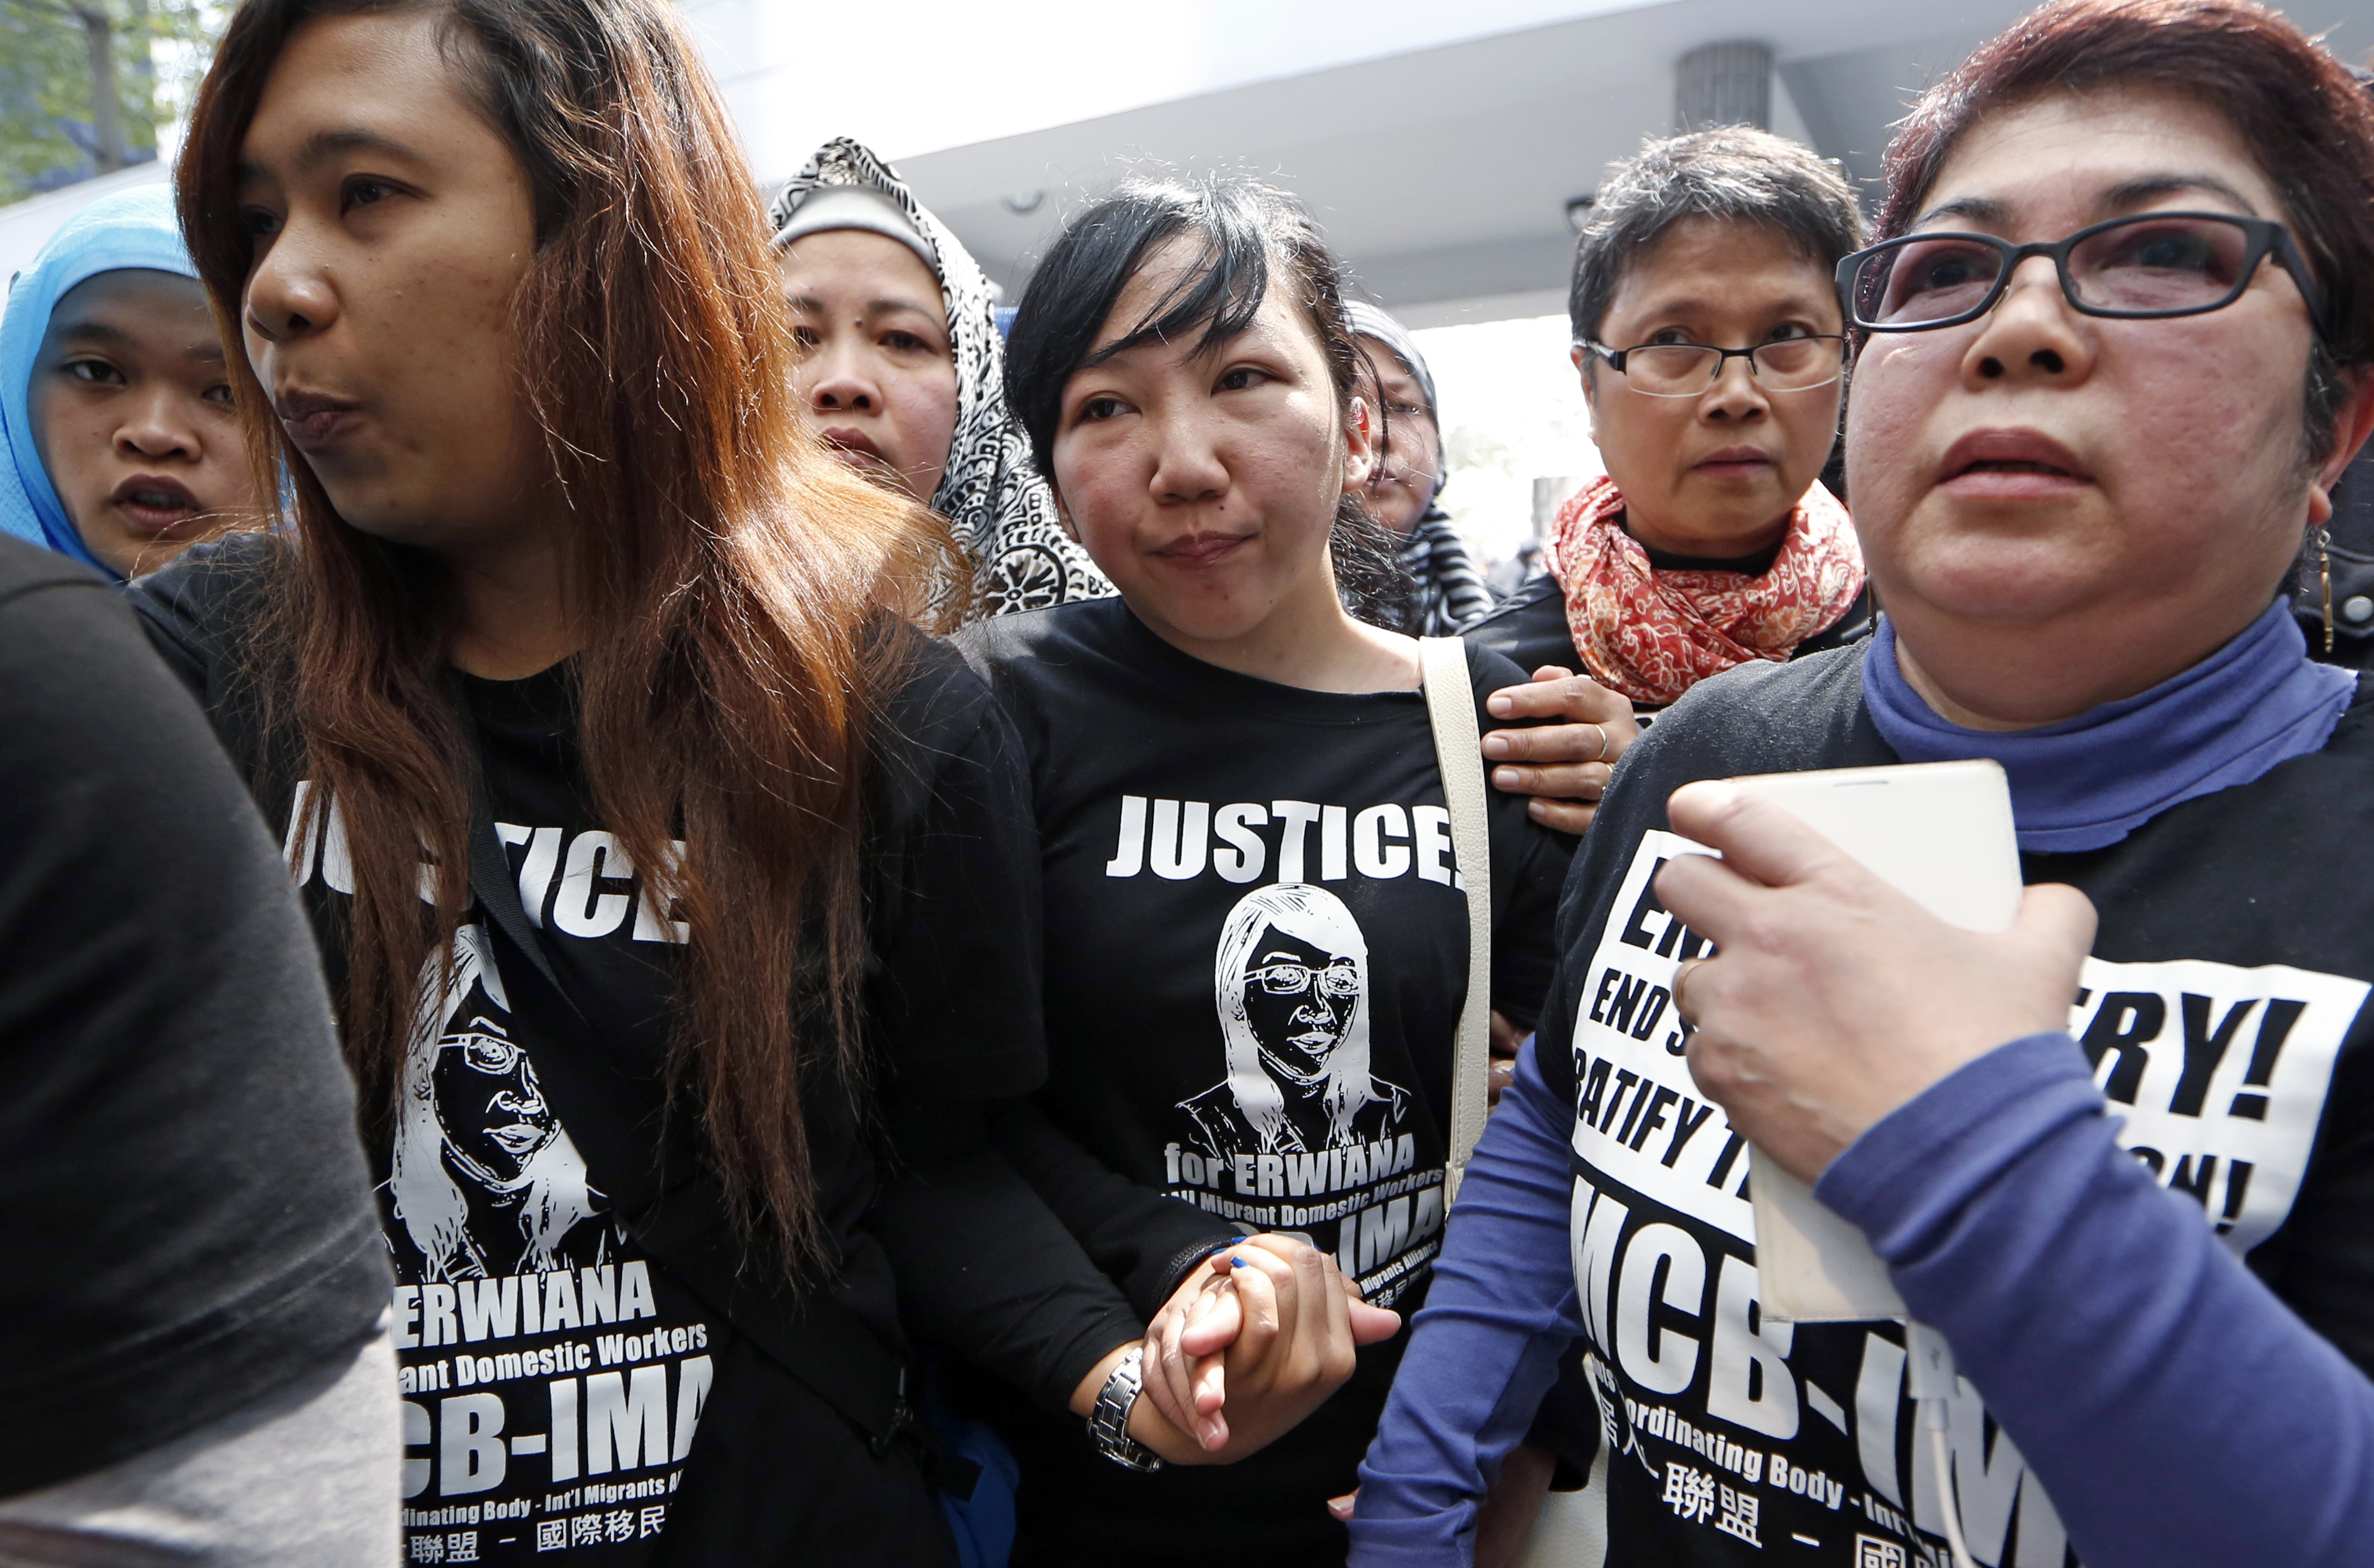 Indonesian maid Erwiana Sulistyaningsih, center, accompanied by her supporters, walks out from a court in Hong Kong on Feb. 10, 2015